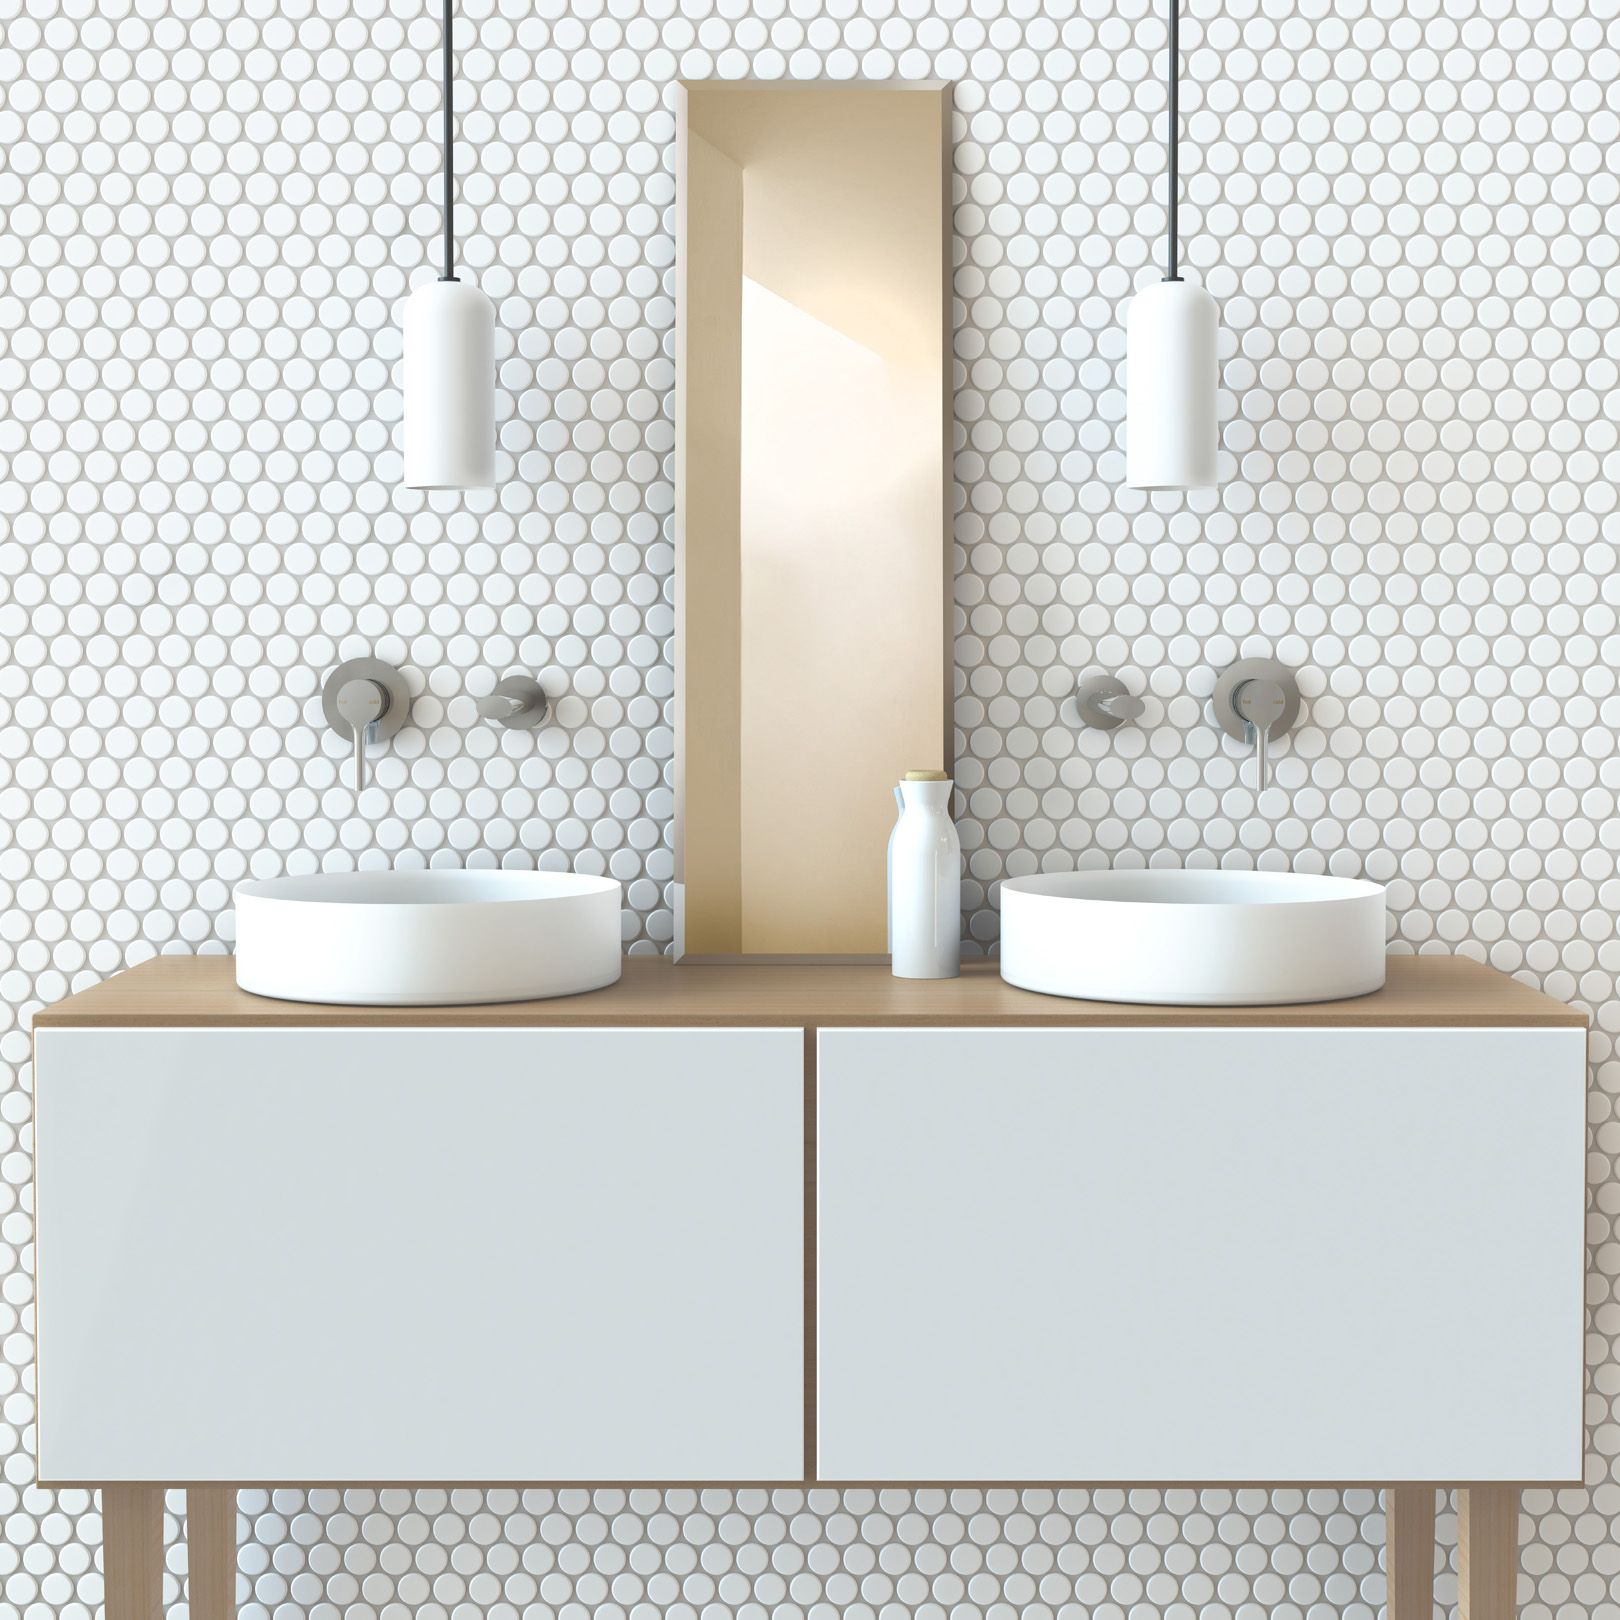 Featured in this neat little bathroom set-up is the Vivid Slimline ...